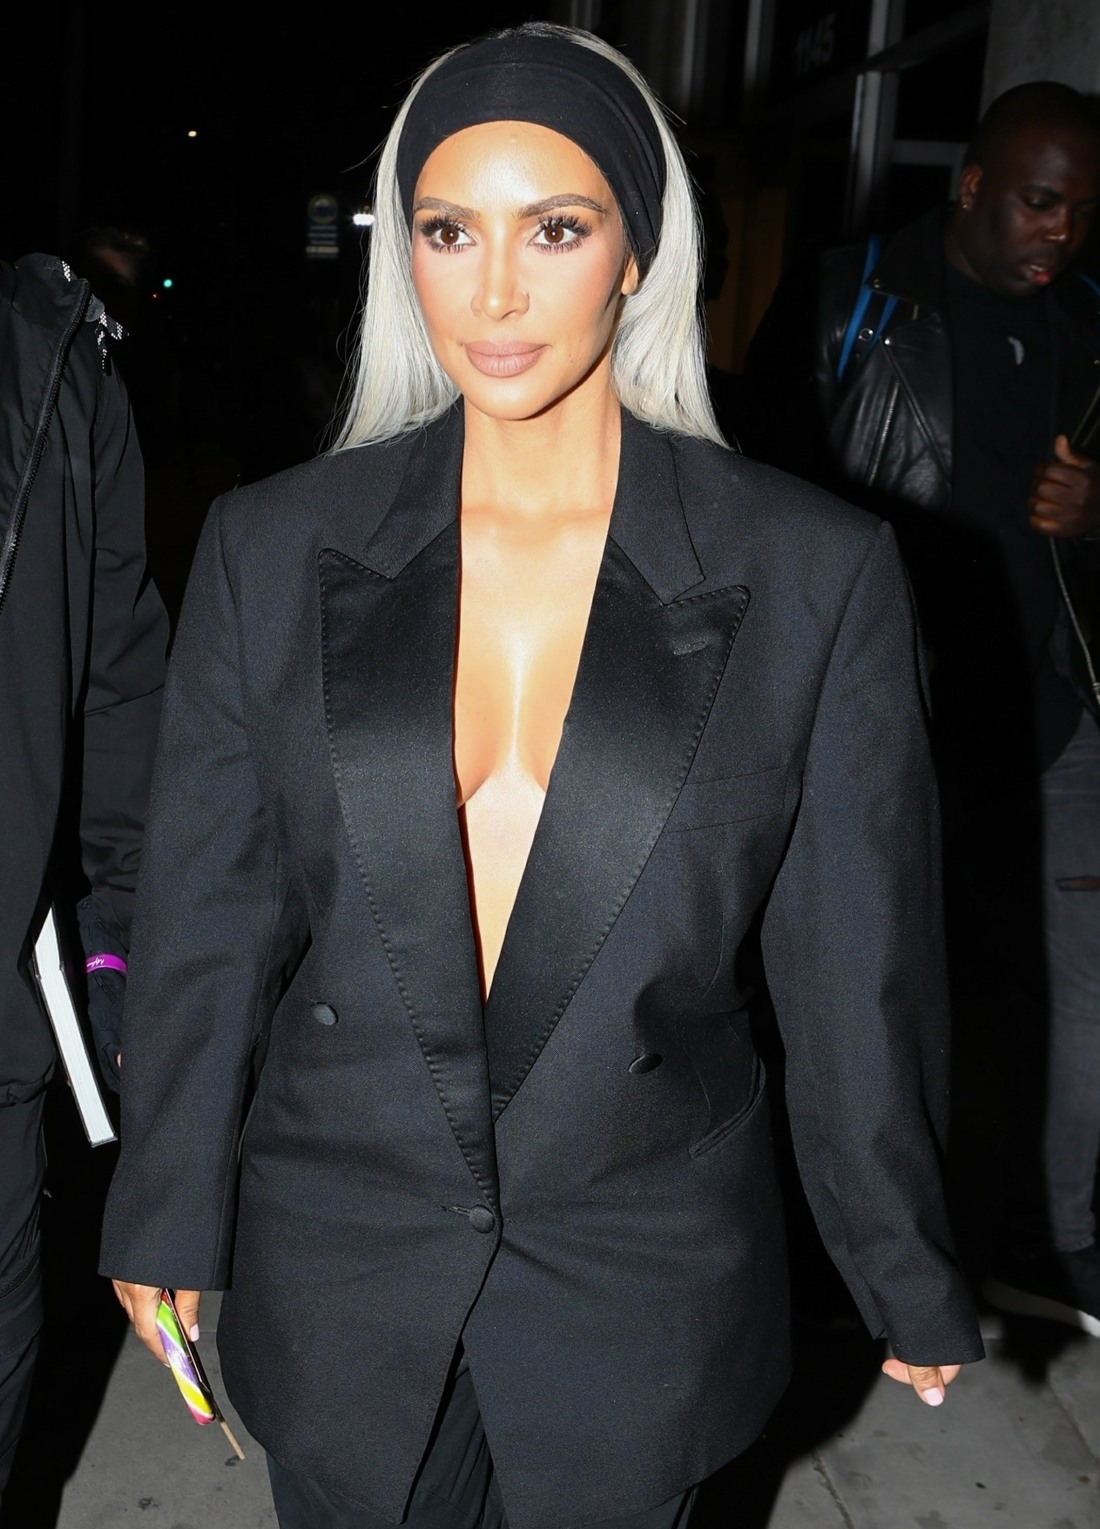 Kim Kardashian exits the Create & Cultivate Conference in a plunging suit